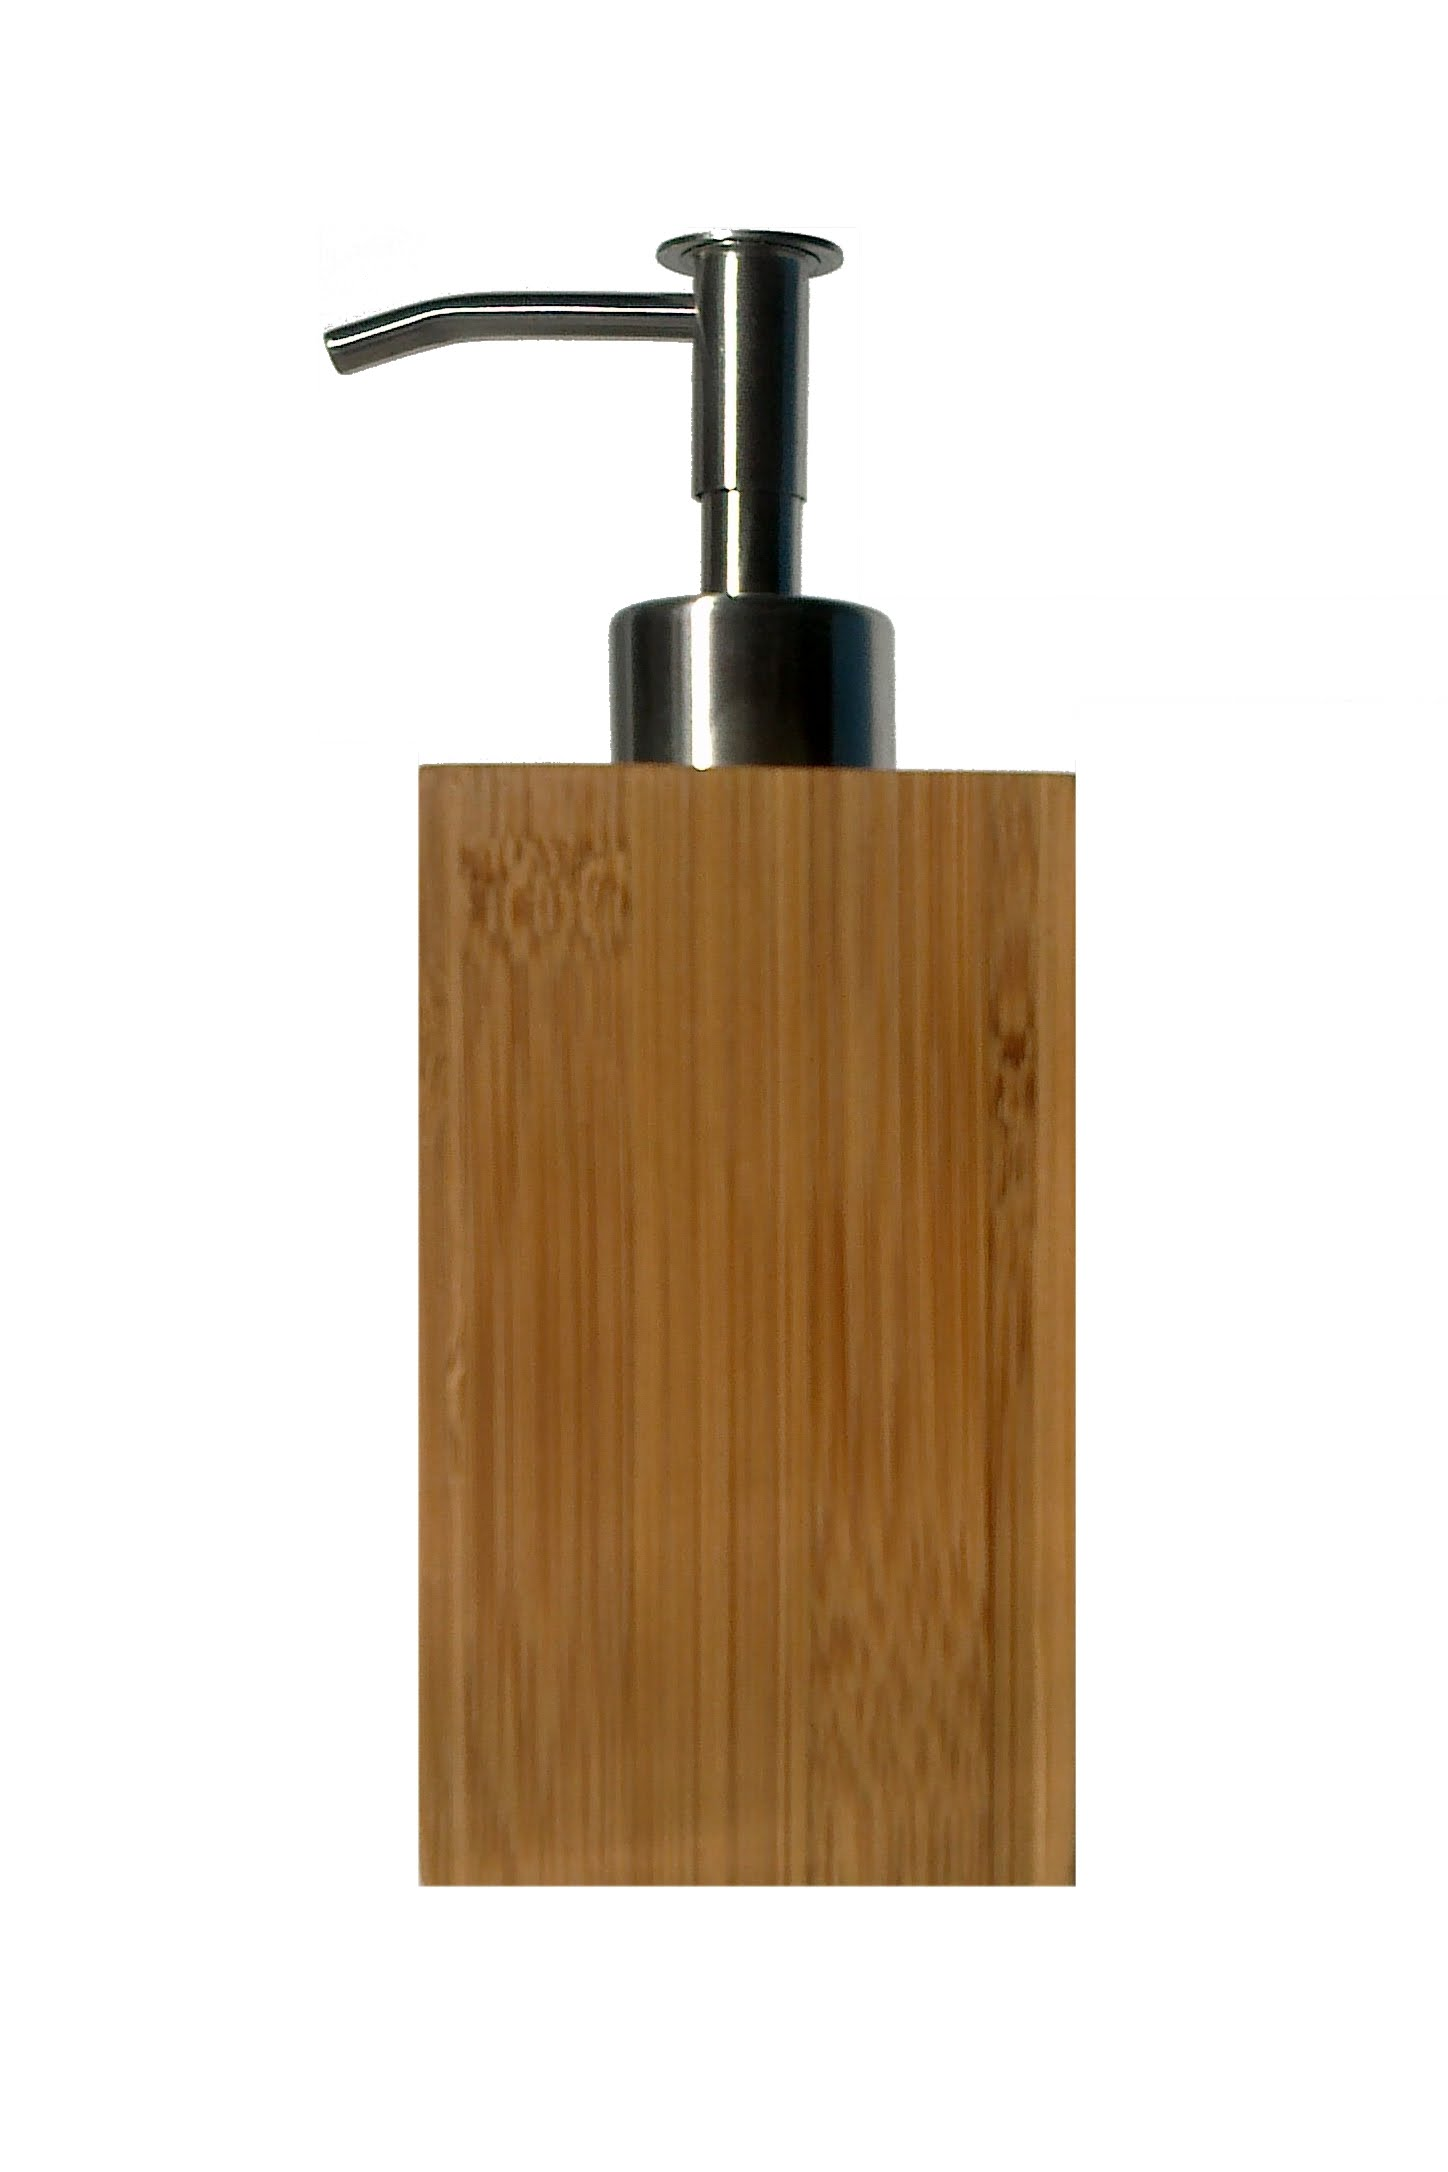 Unique Bamboo Soap Dispenser